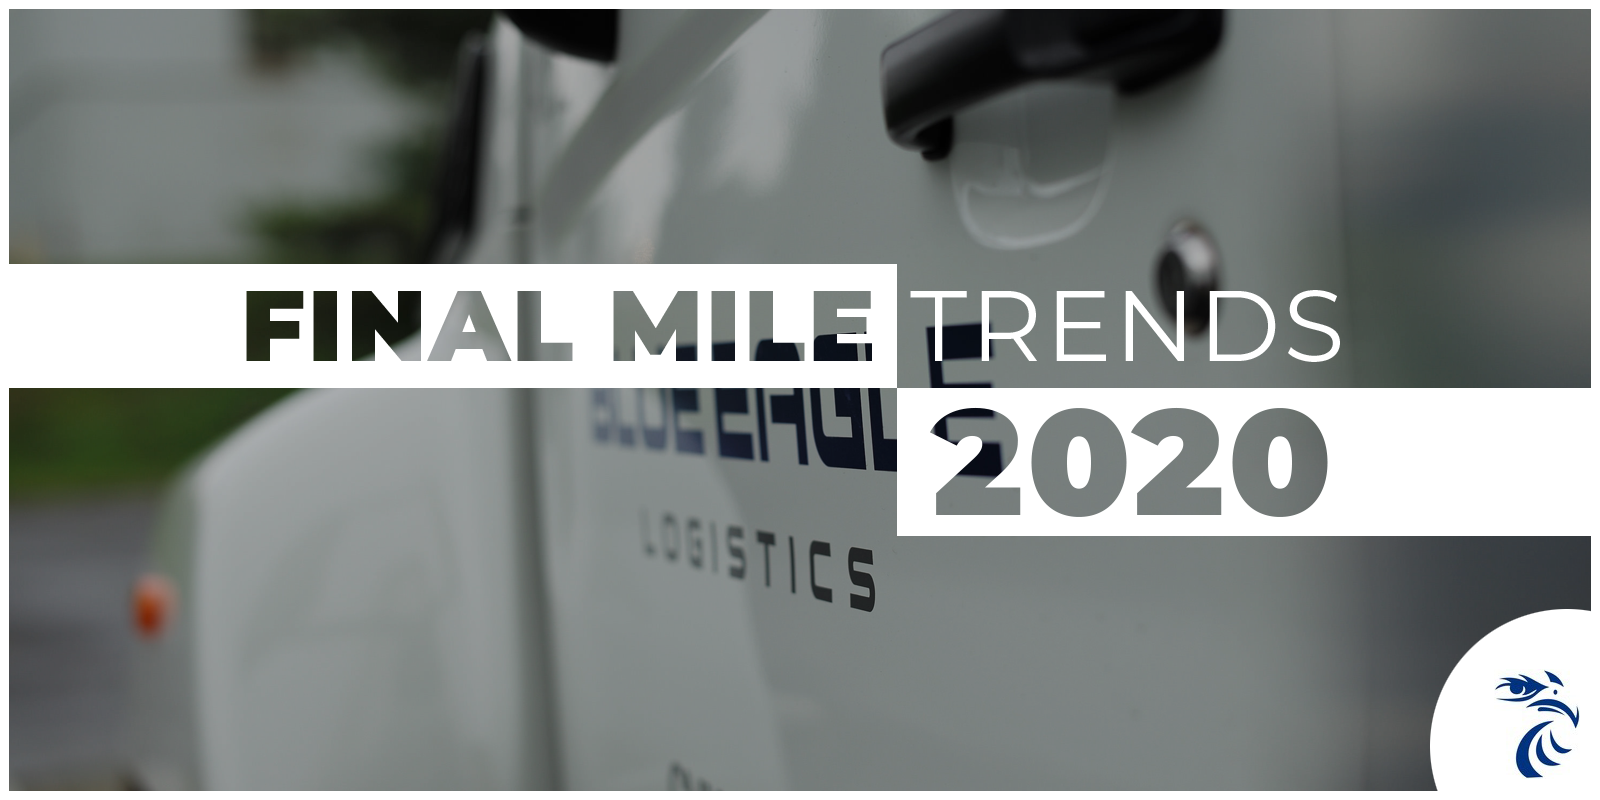 Picture of Blue Eagle Van with tagline: Final Mile Trends 2020